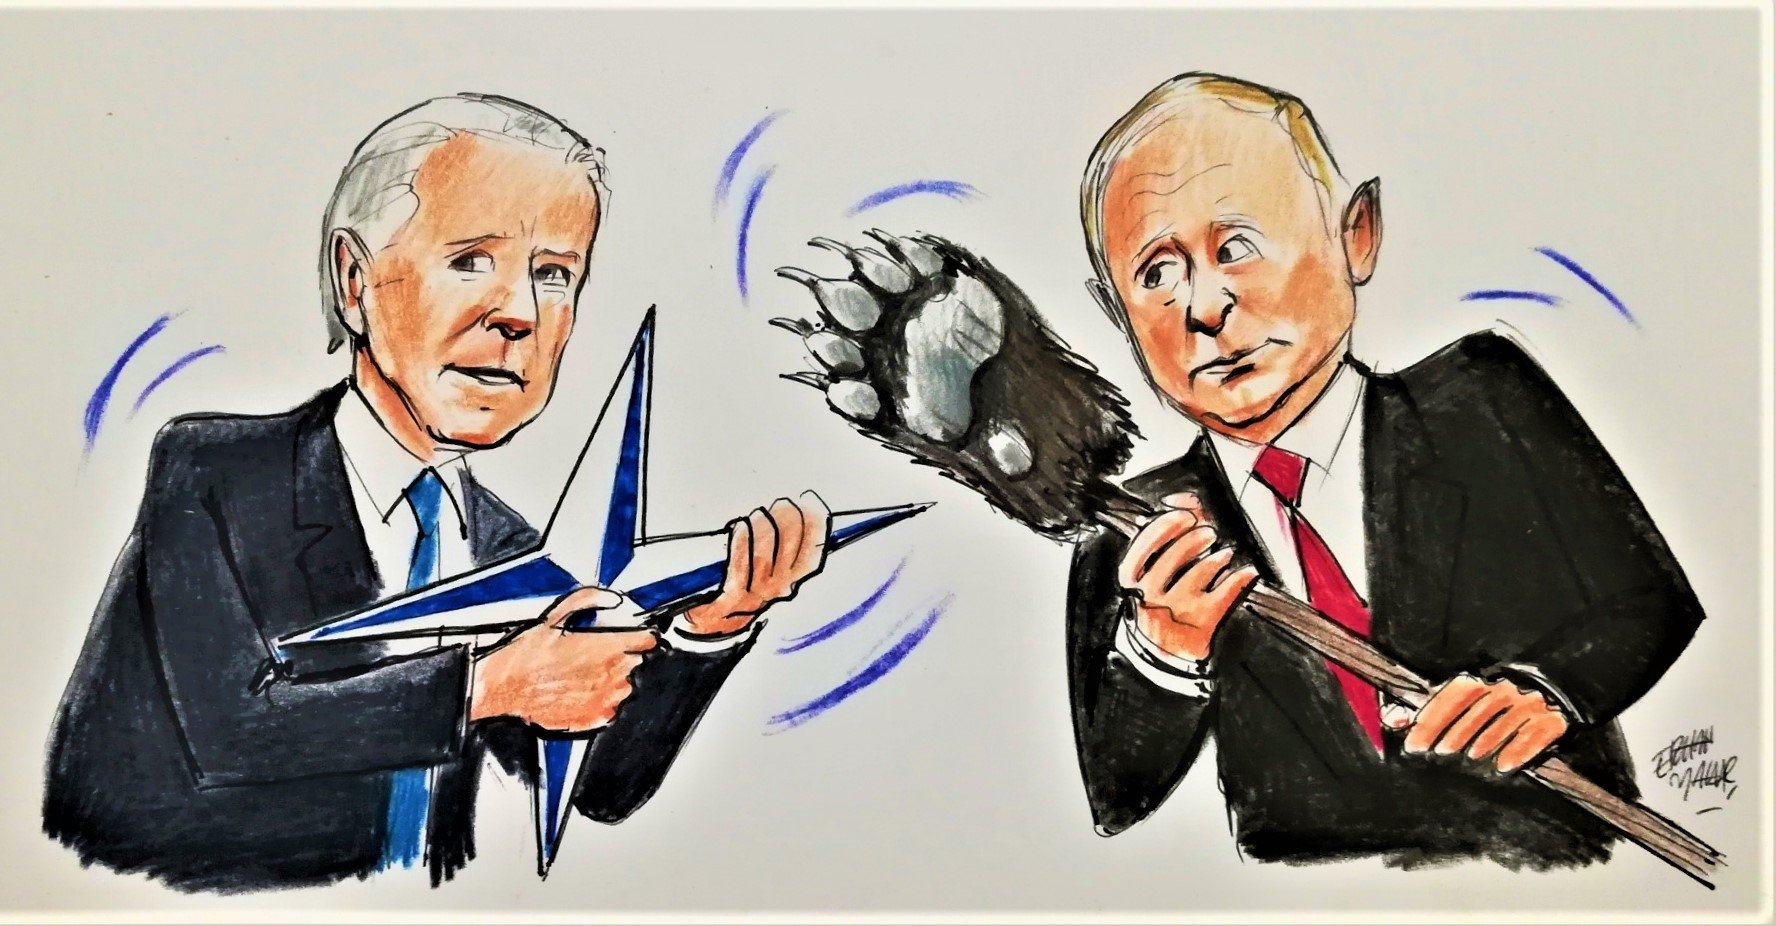 Donbass: The first round between Biden and Putin